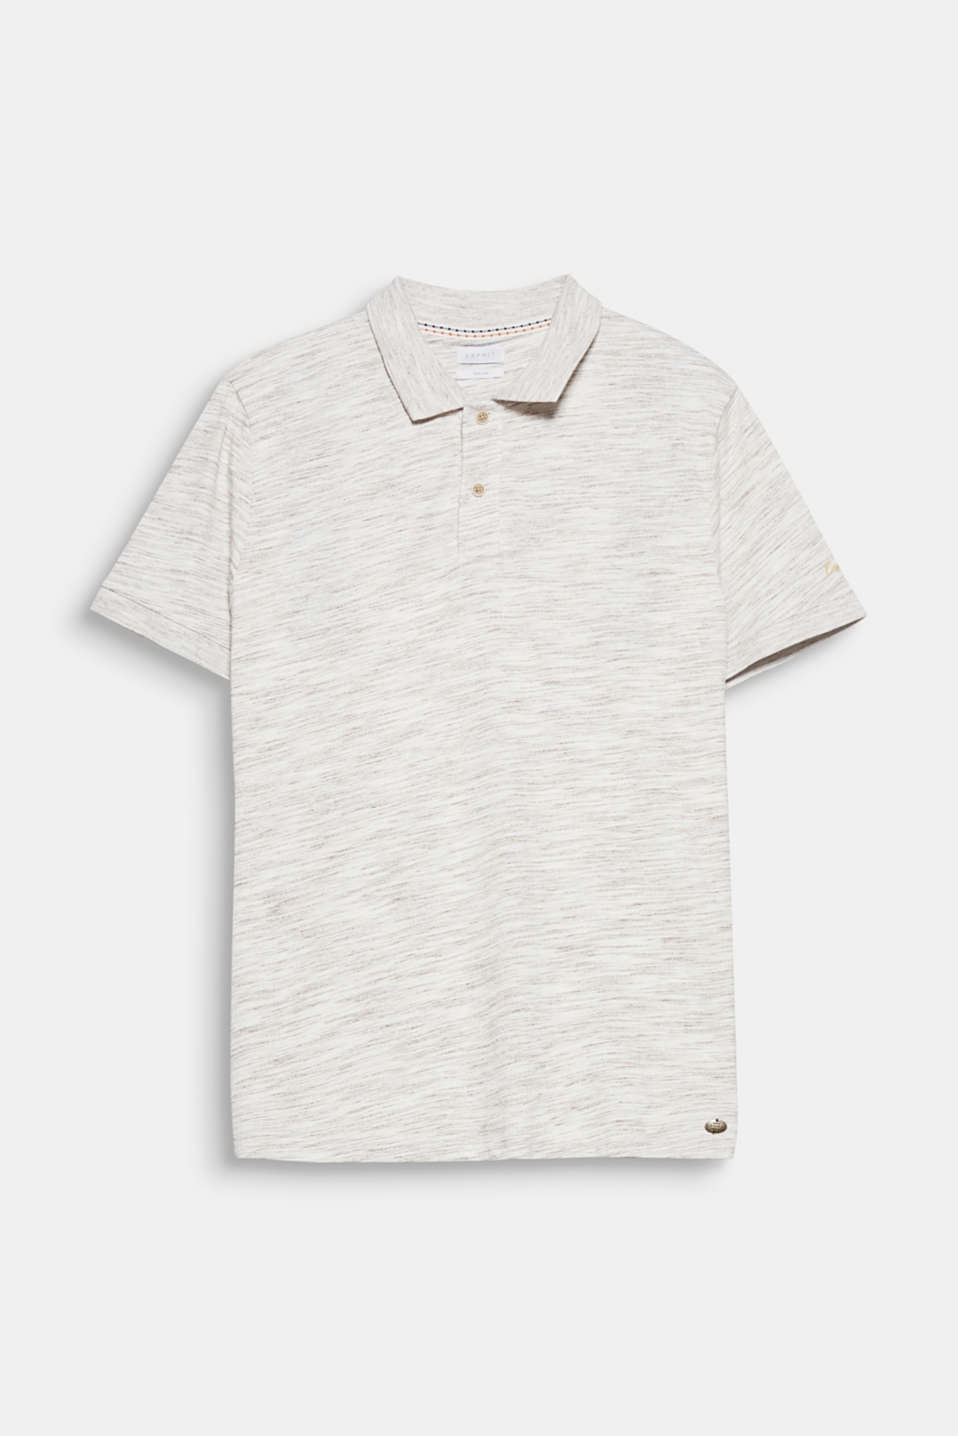 The melange jersey gives this polo shirt its casual look.